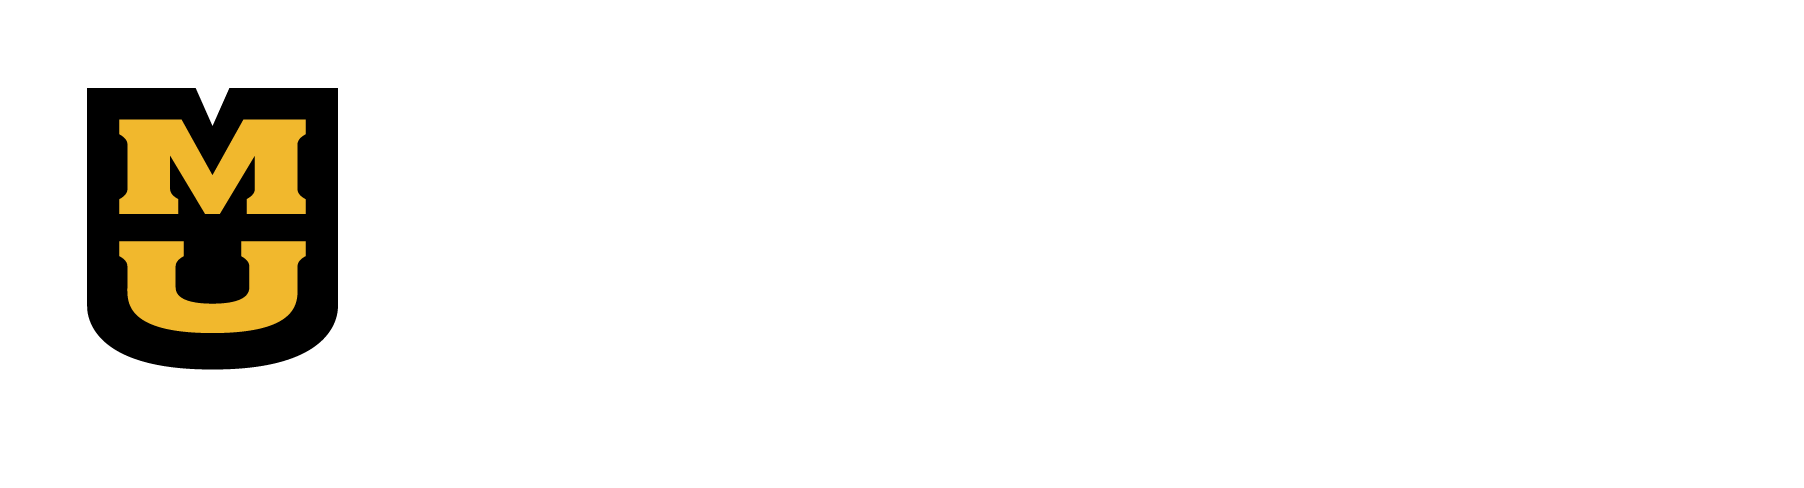 University of Missouri Graduate School